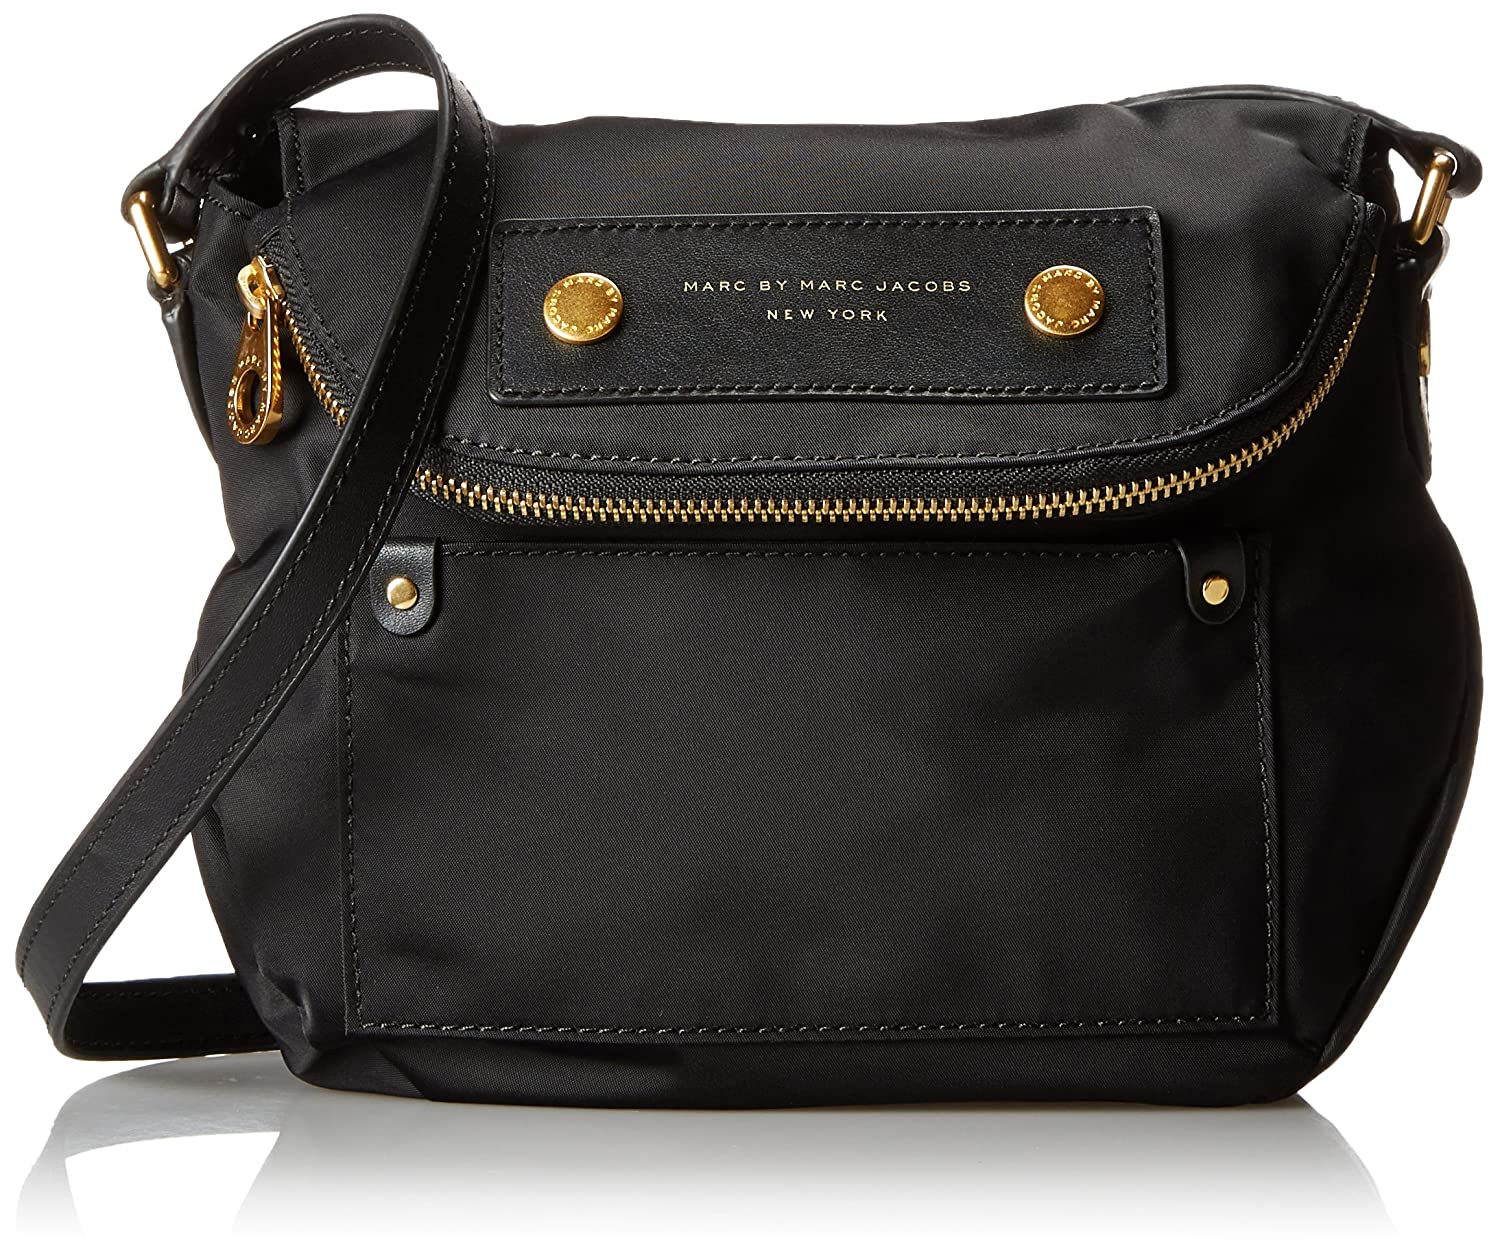 Marc by Marc Jacobs Preppy Nylon Mini Natasha Cross Body Bag Black One Size